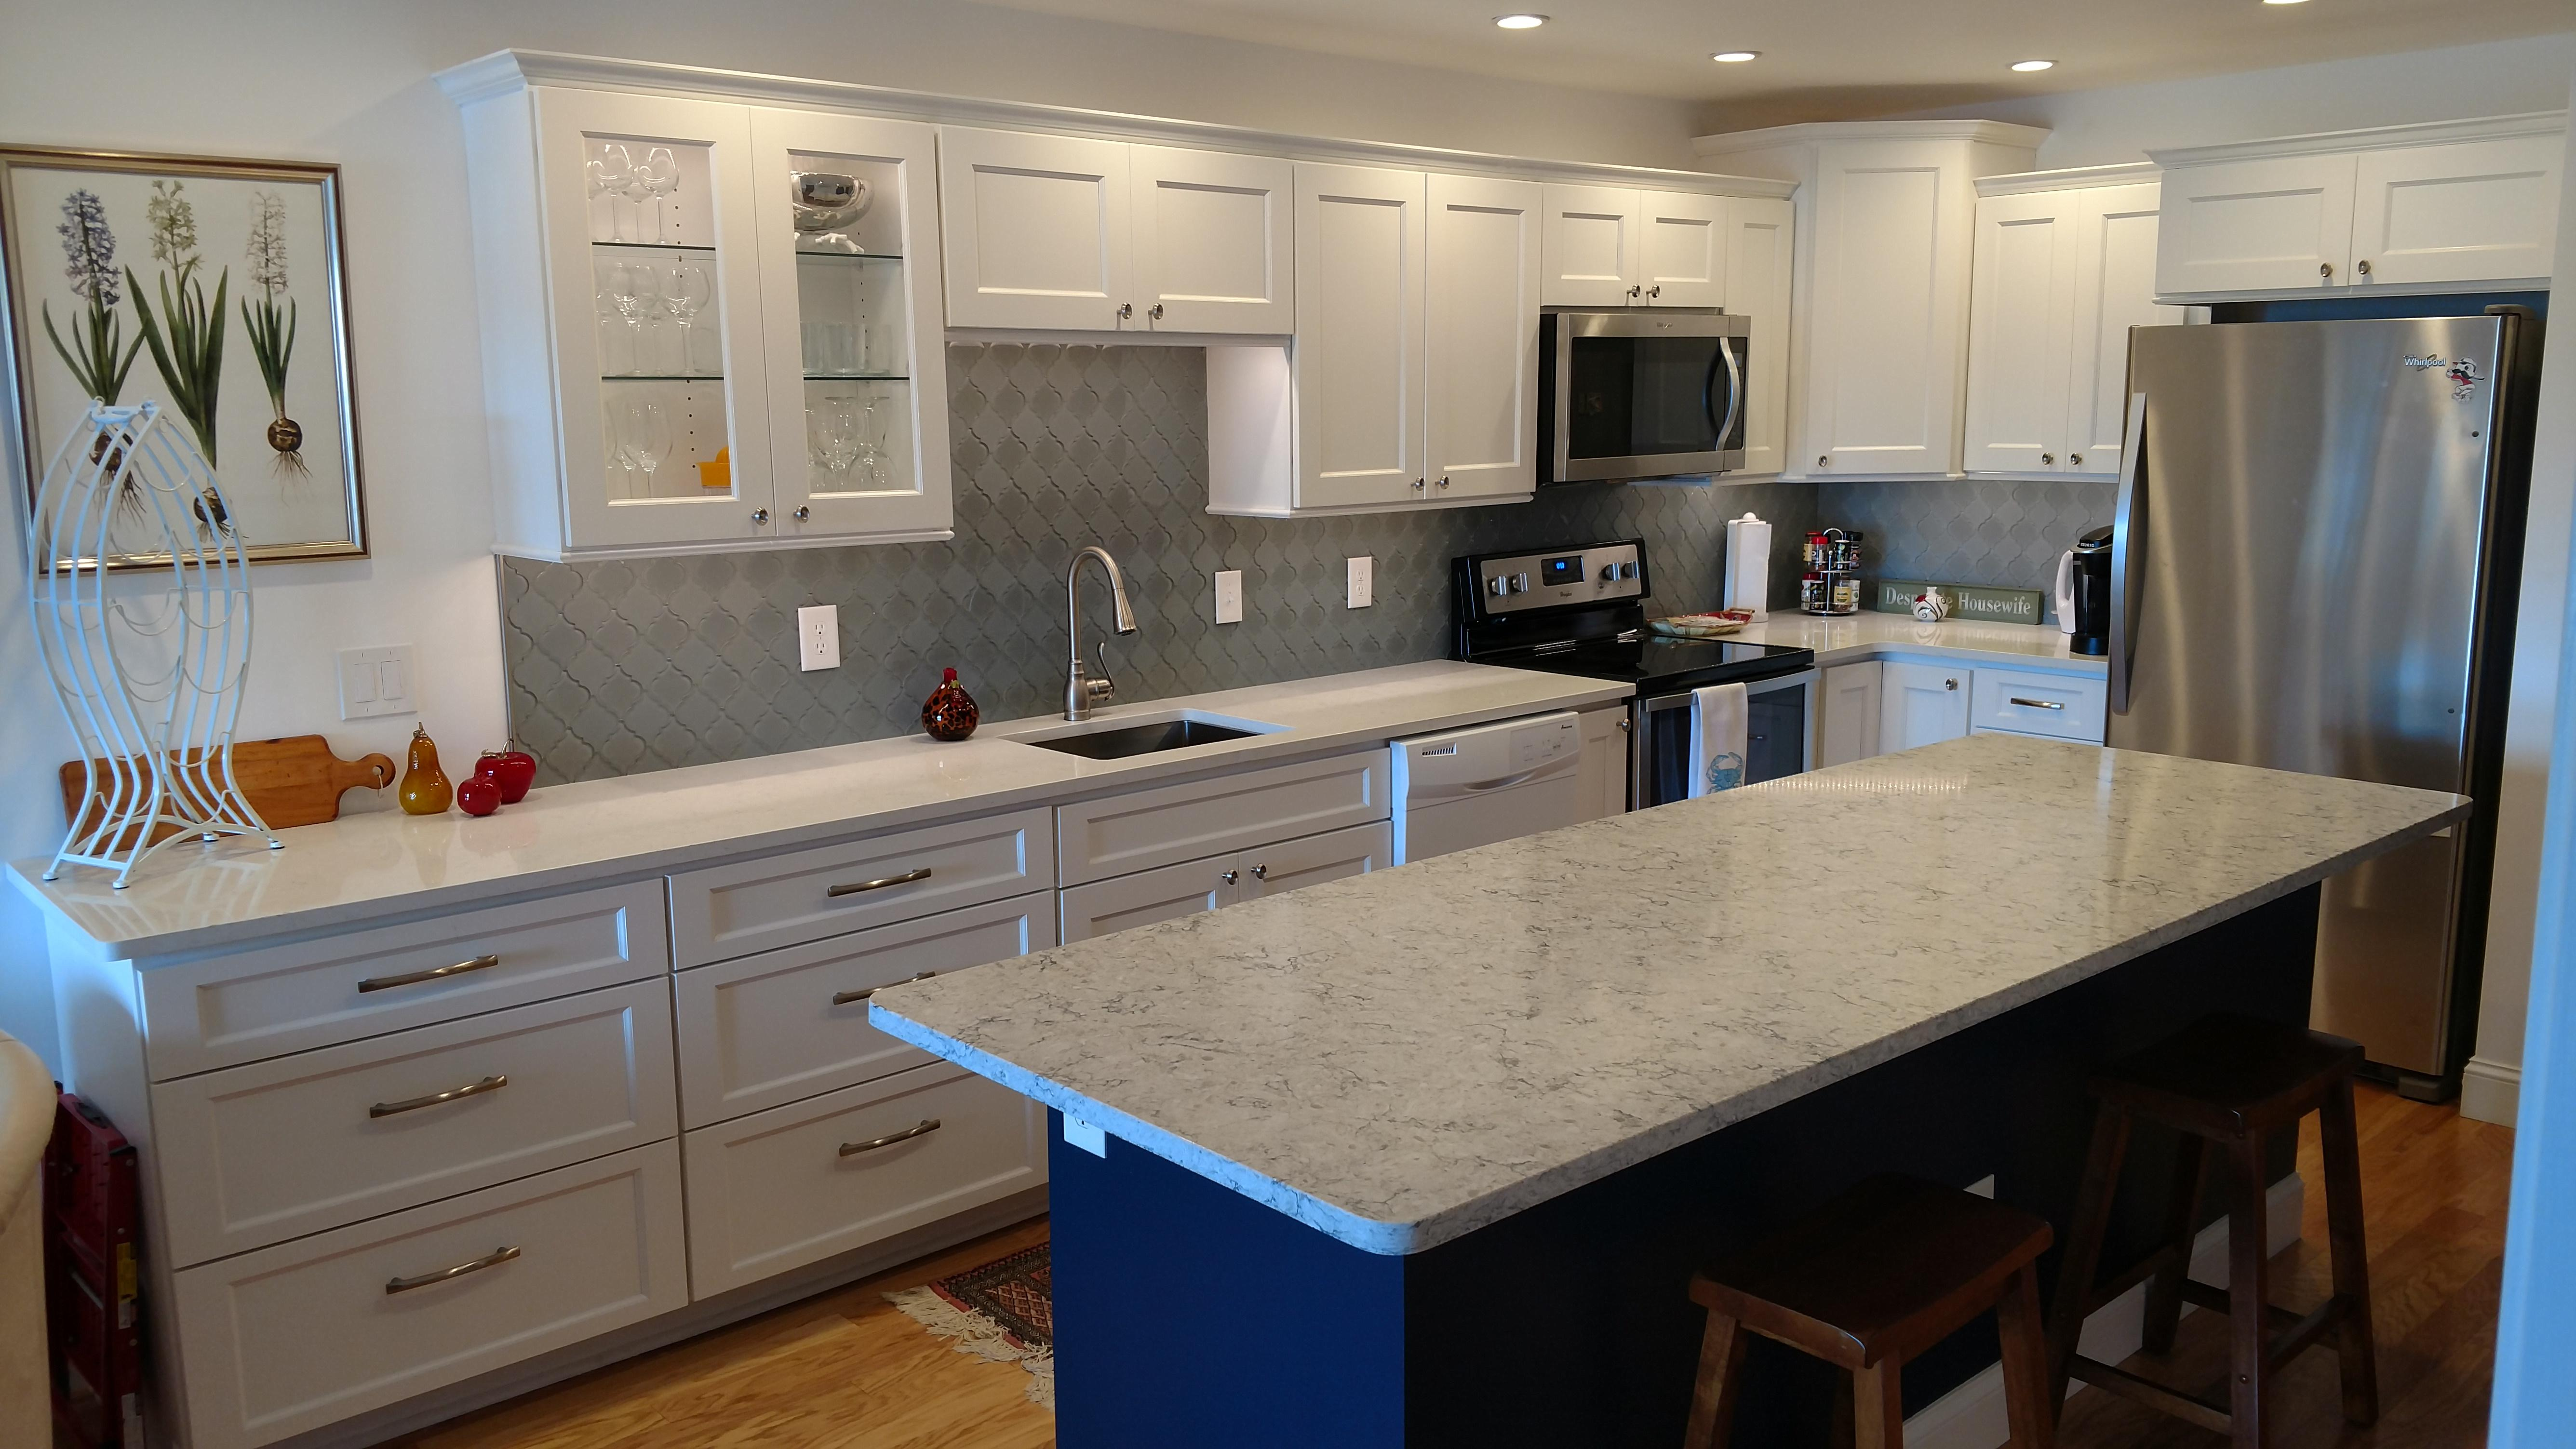 Accurate Upgrades Home Improvements LLC image 15